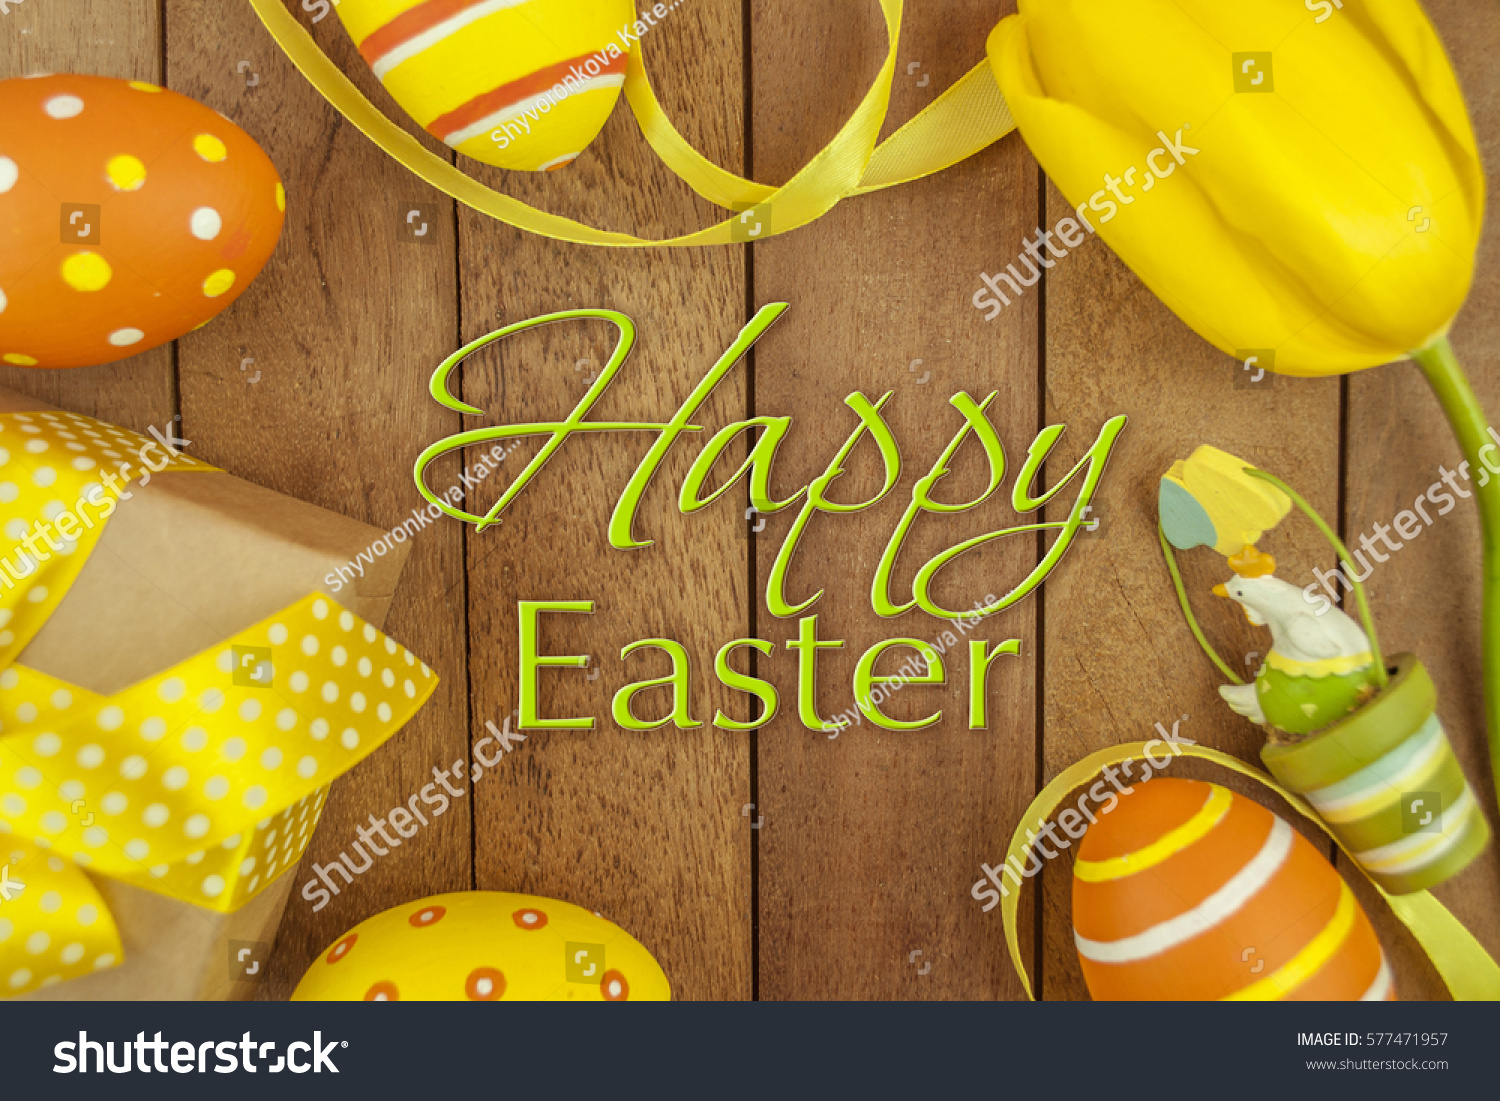 Tulips gift box easter background stock photo 577471957 shutterstock tulips and gift box easter background negle Gallery